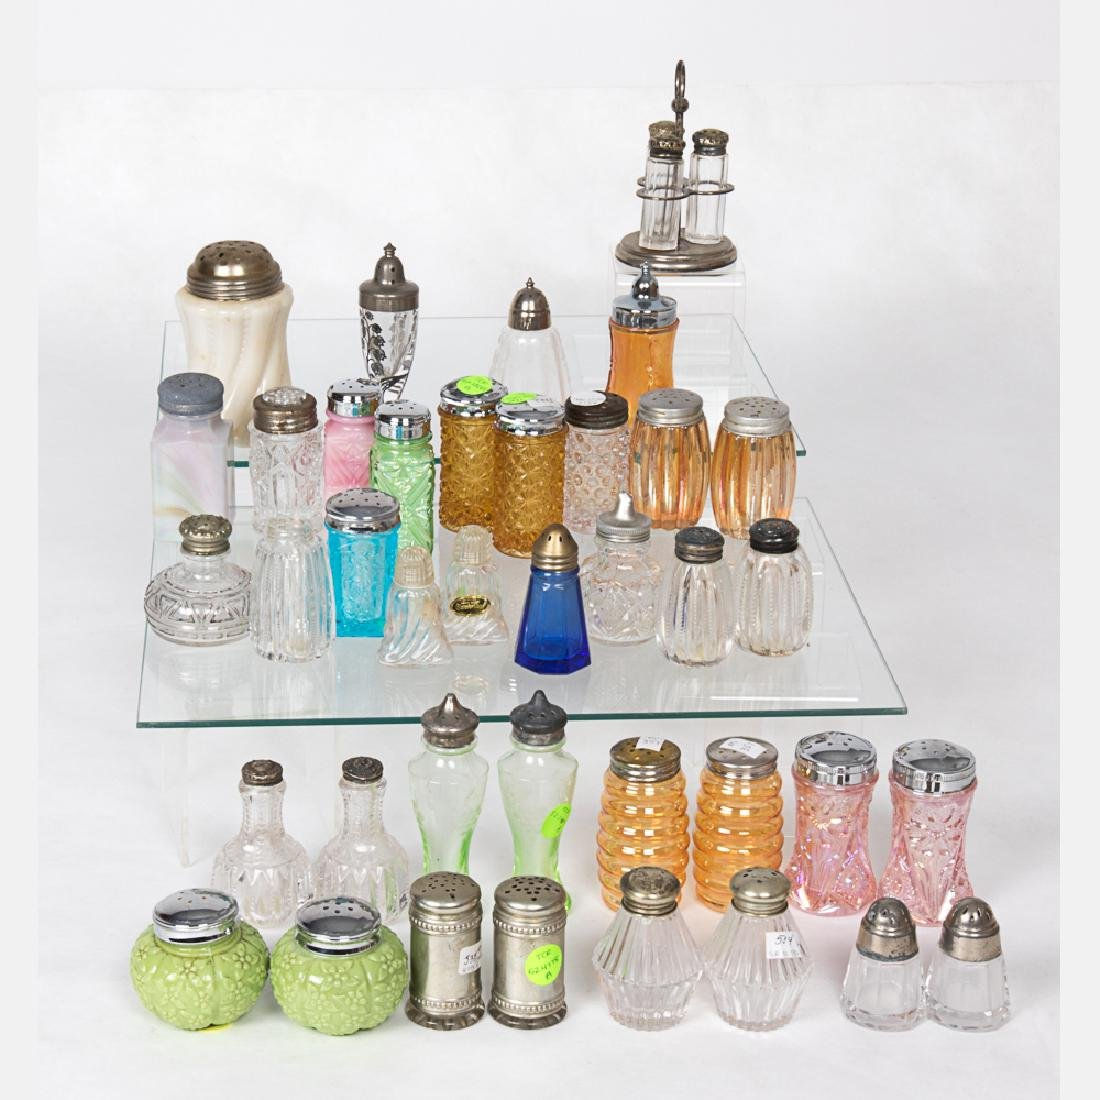 A Collection of Molded and Pressed, Colored, Clear and